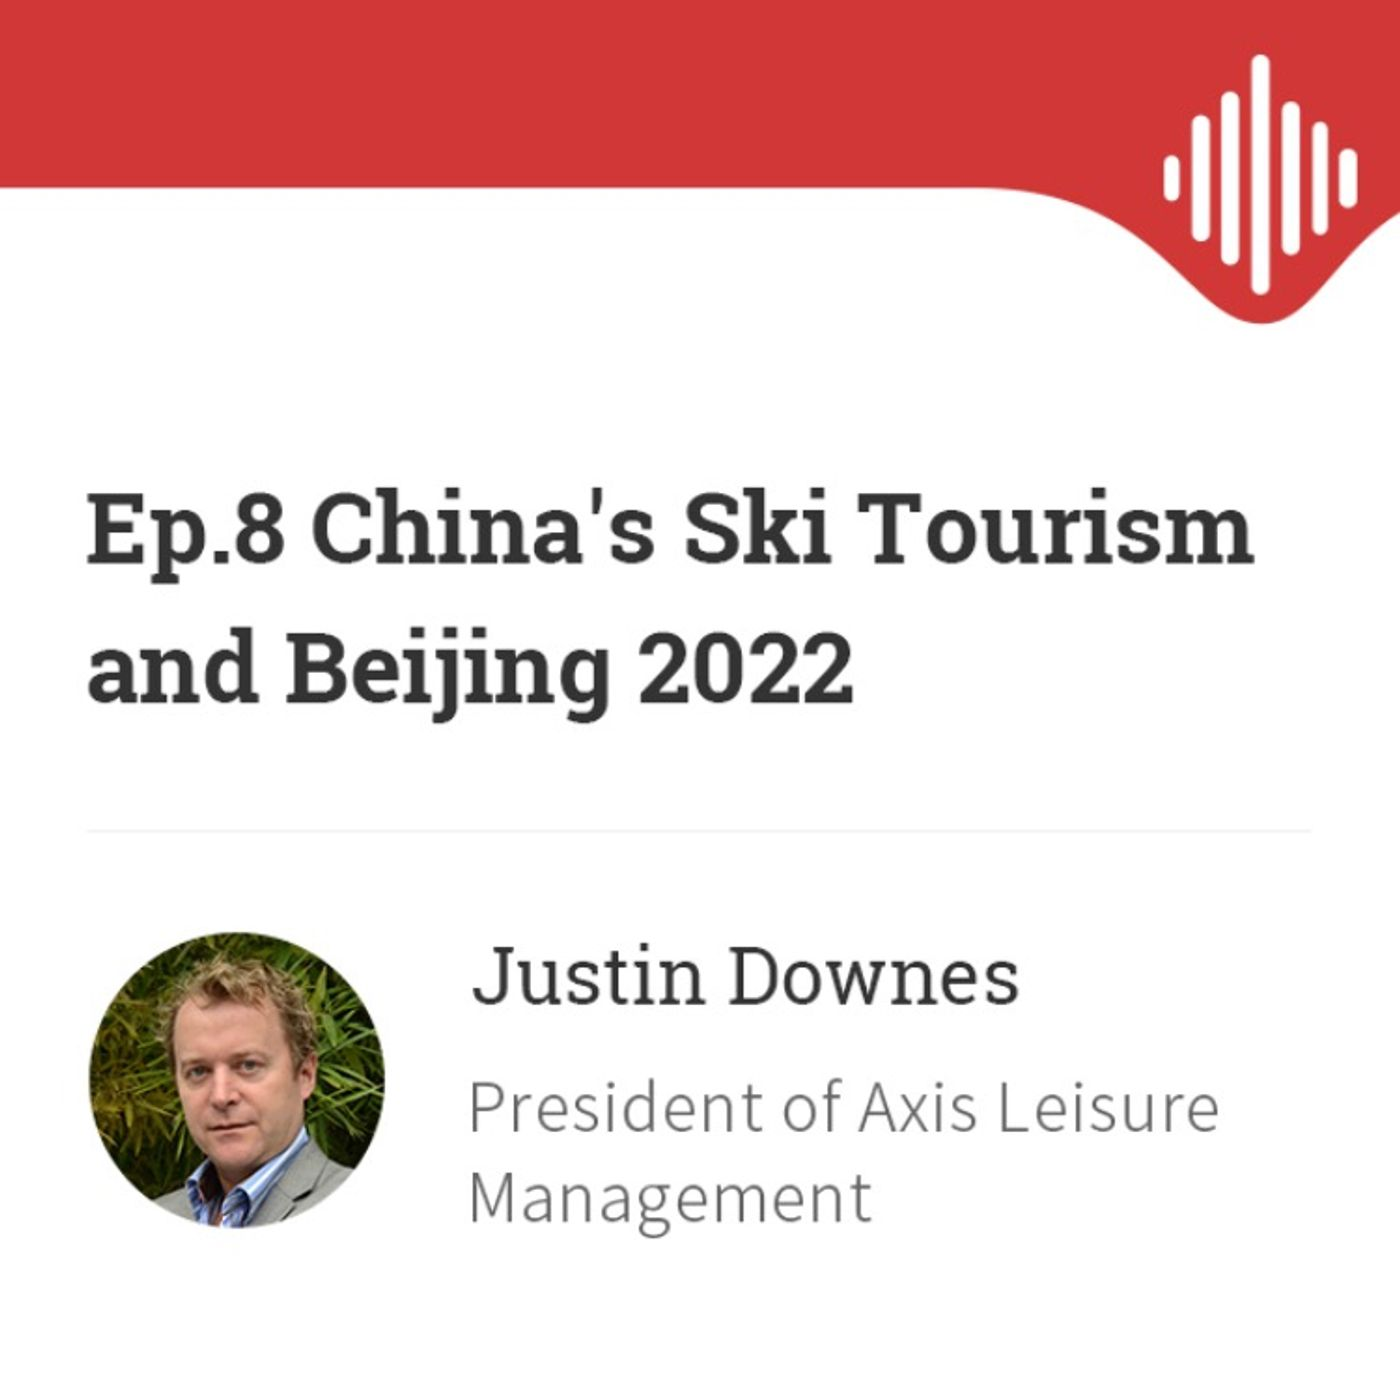 Ep.8 China's ski tourism and the build-up to Beijing 2022, with Justin Downes of Axis